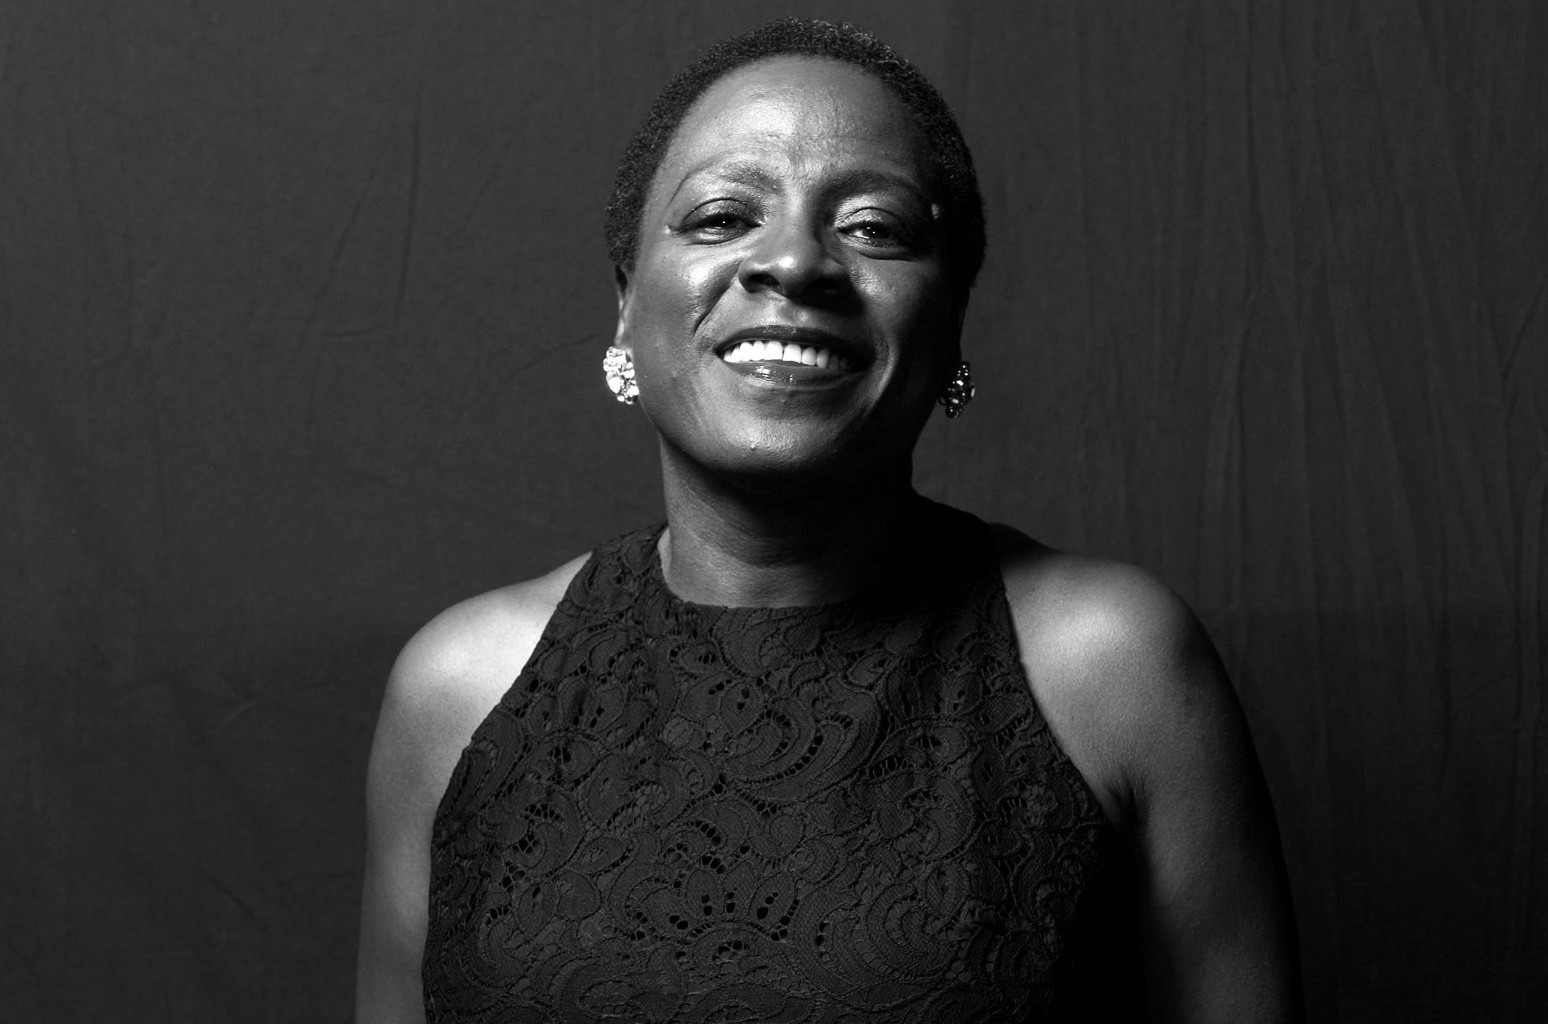 Sharon Jones of Sharon Jones & the Dap-Kings poses for a portrait backstage at  day 1 of the AFROPUNK festival at Commodore Barry Park on Aug. 23, 2014 in Brooklyn.